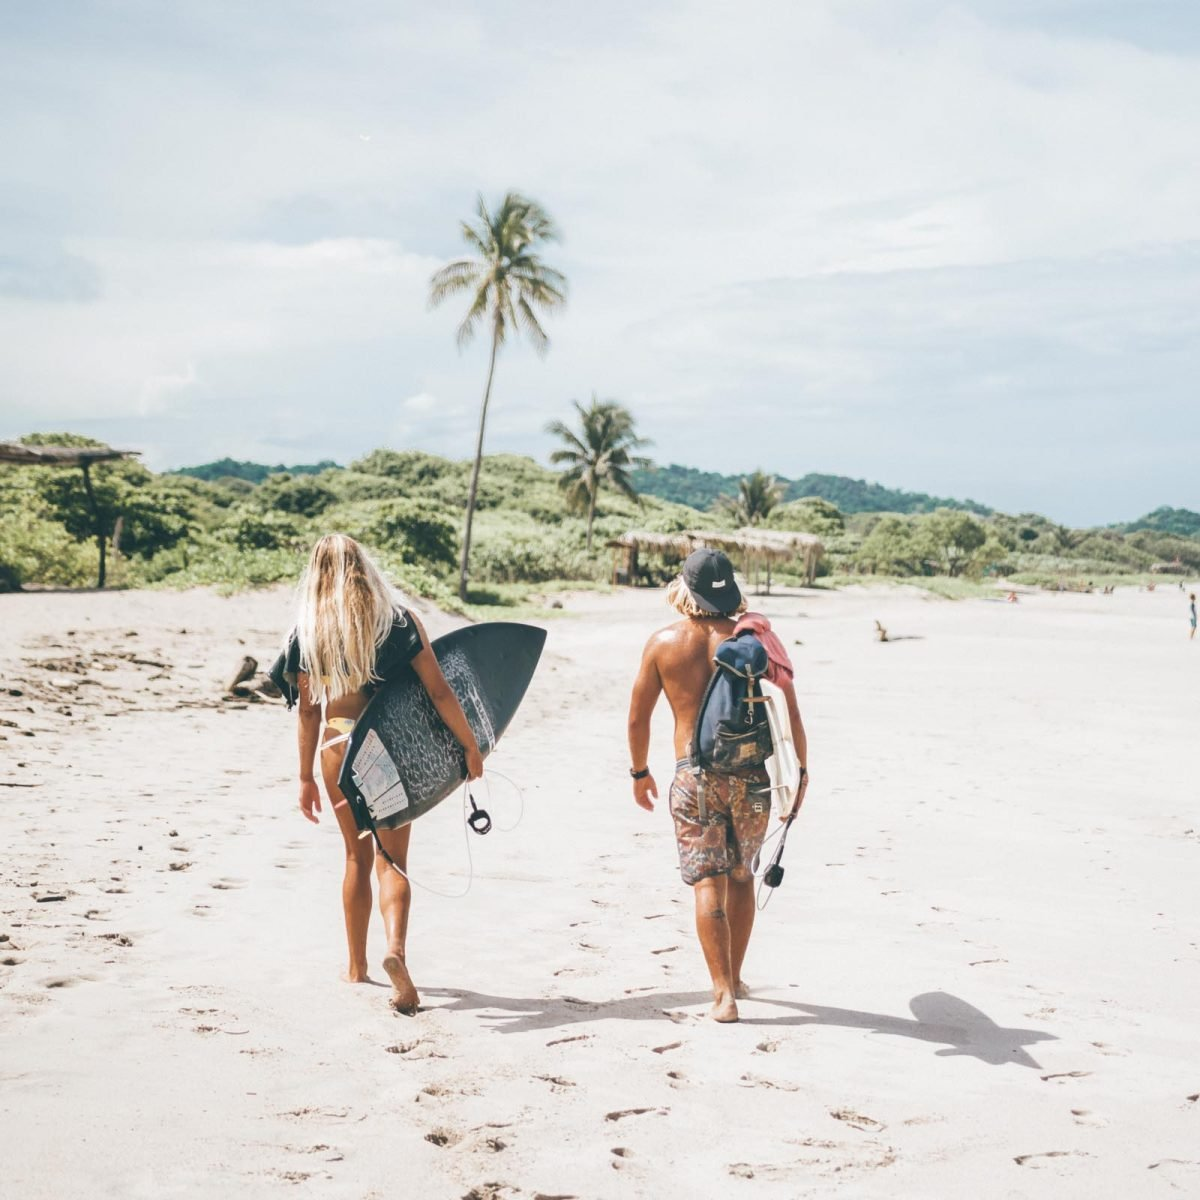 Walking the Surf Camp Costa Rica